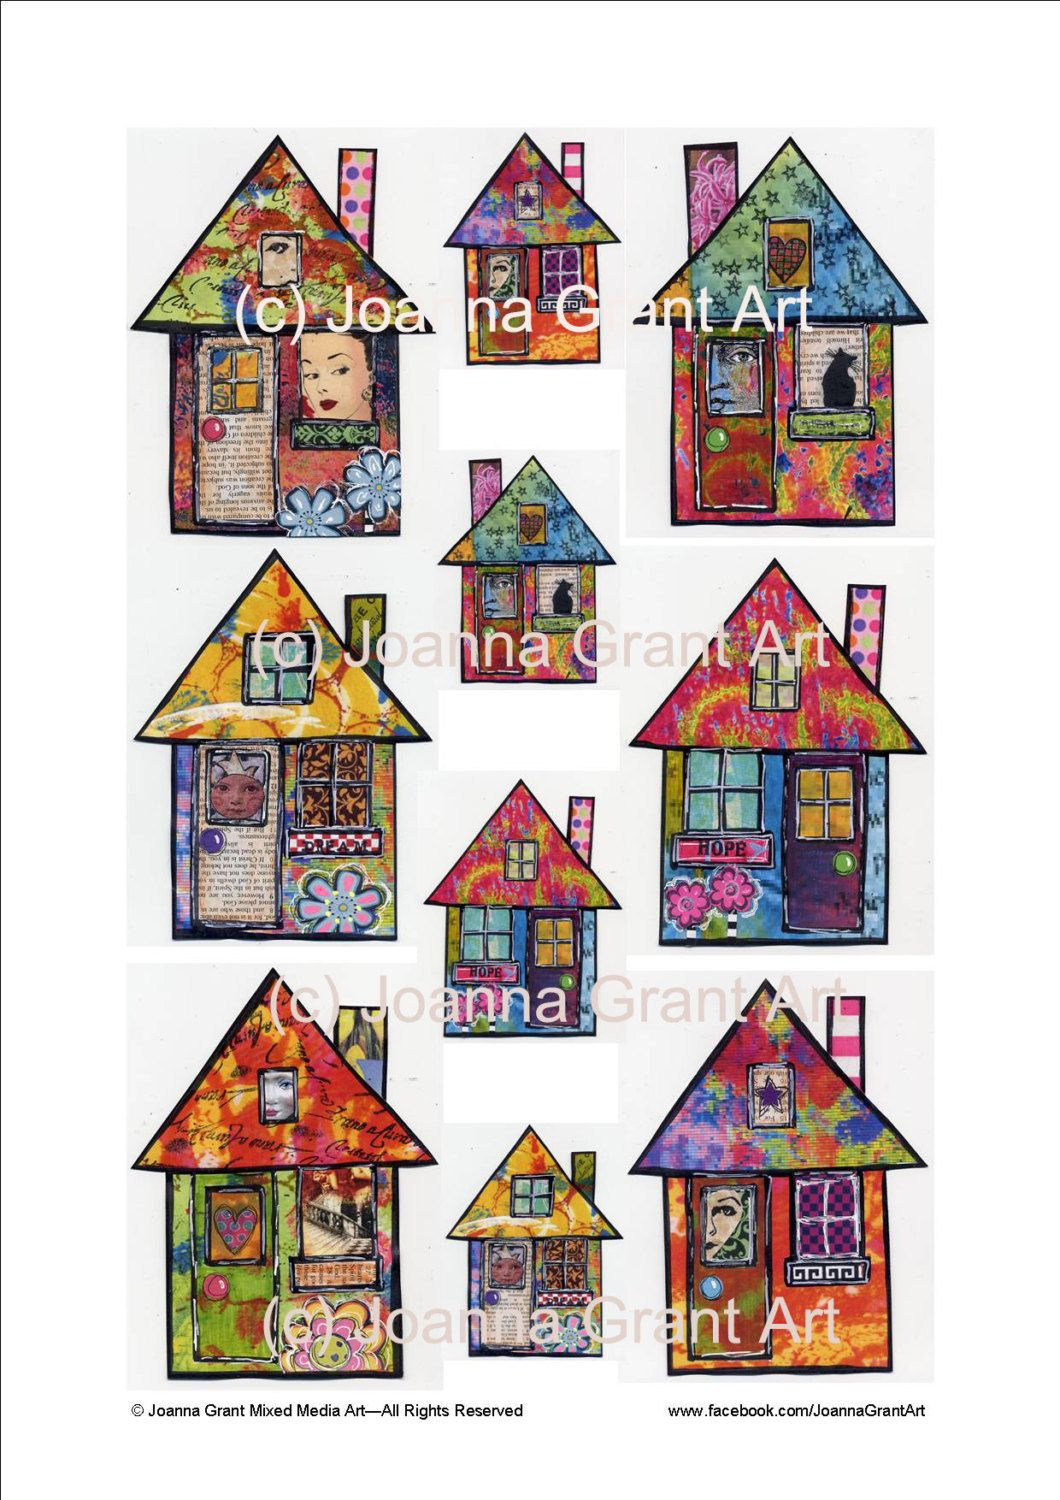 Funky Houses Digital Instant Download Collage Sheet Mixed Media Art Collage Art Mixed Media Mixed Media Art Art